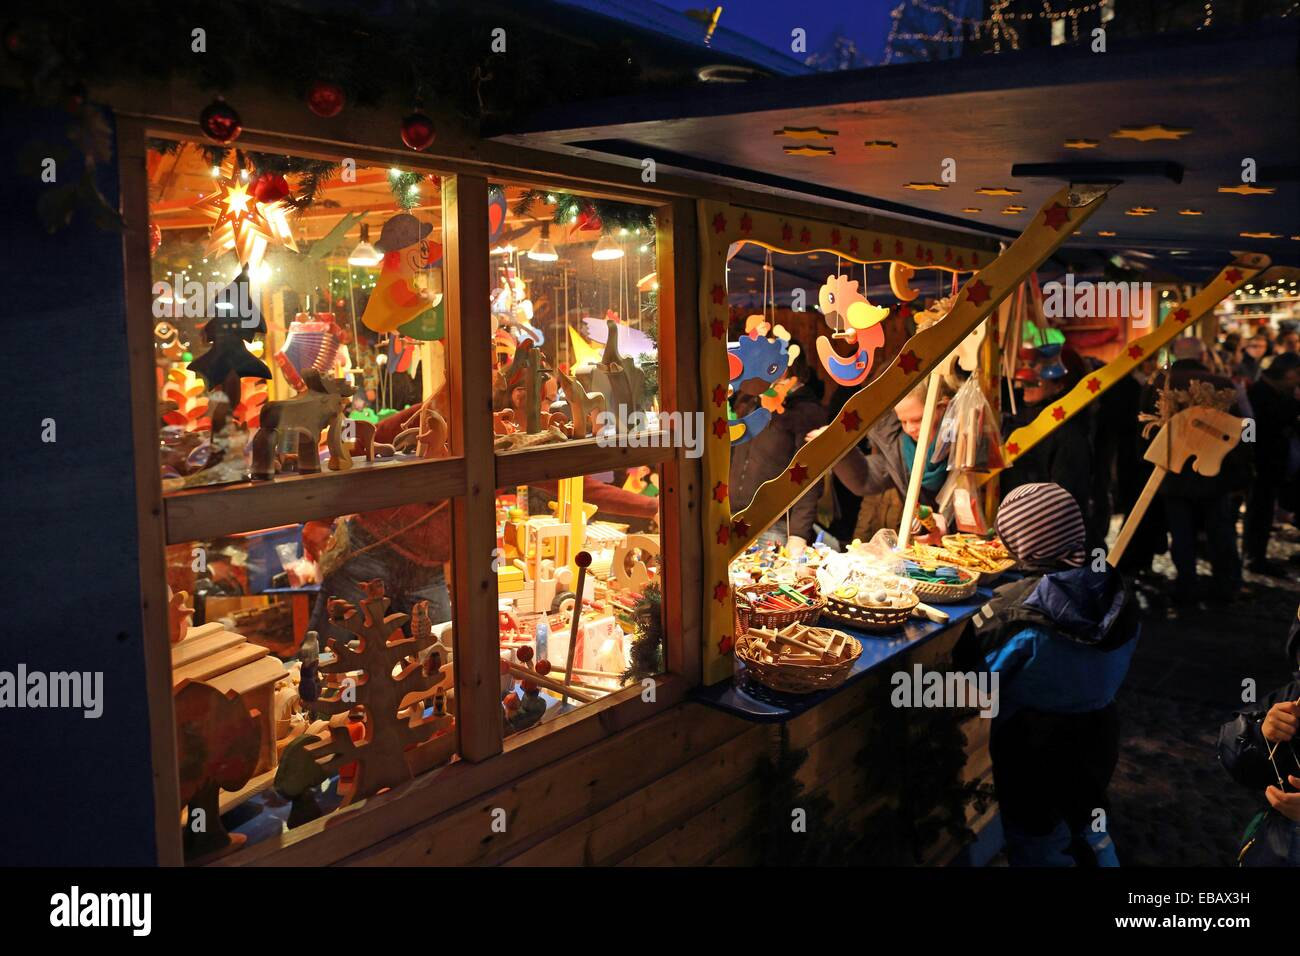 Christmas Market, Lueneburg, Lower Saxonia, Germany, Europe Stock Photo